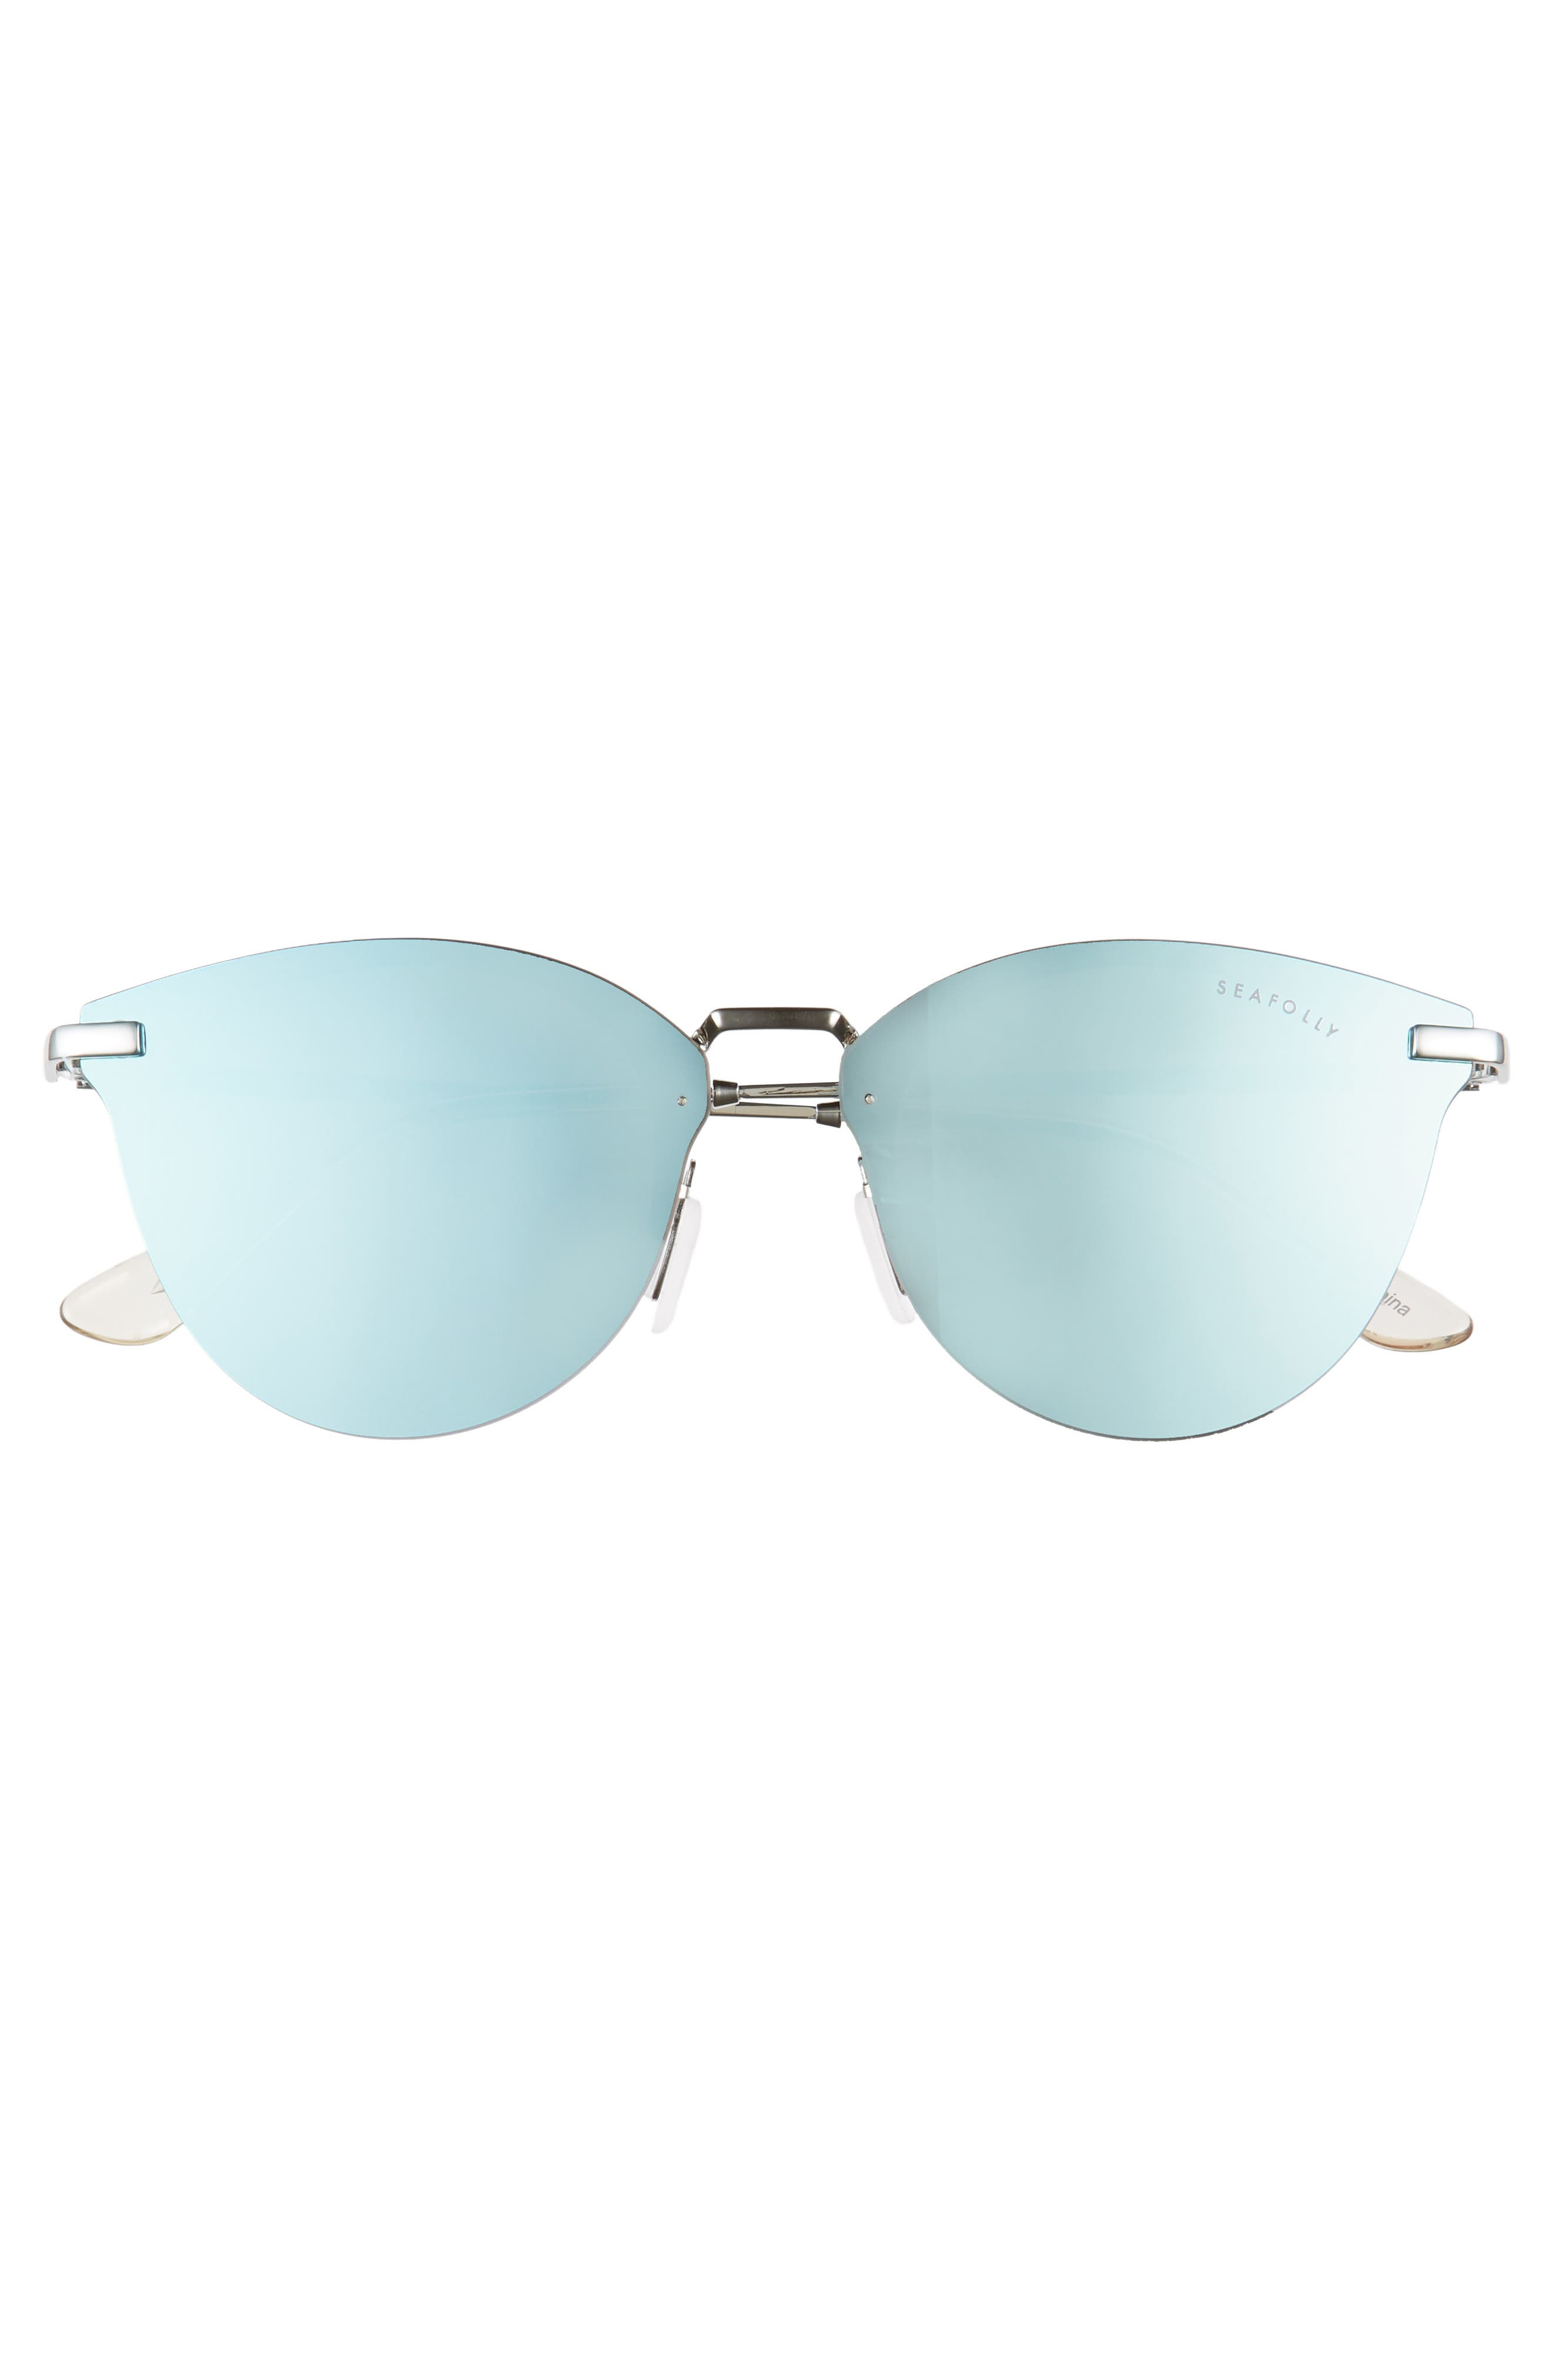 Wylies 50mm Rimless Sunglasses,                             Alternate thumbnail 3, color,                             Ocean